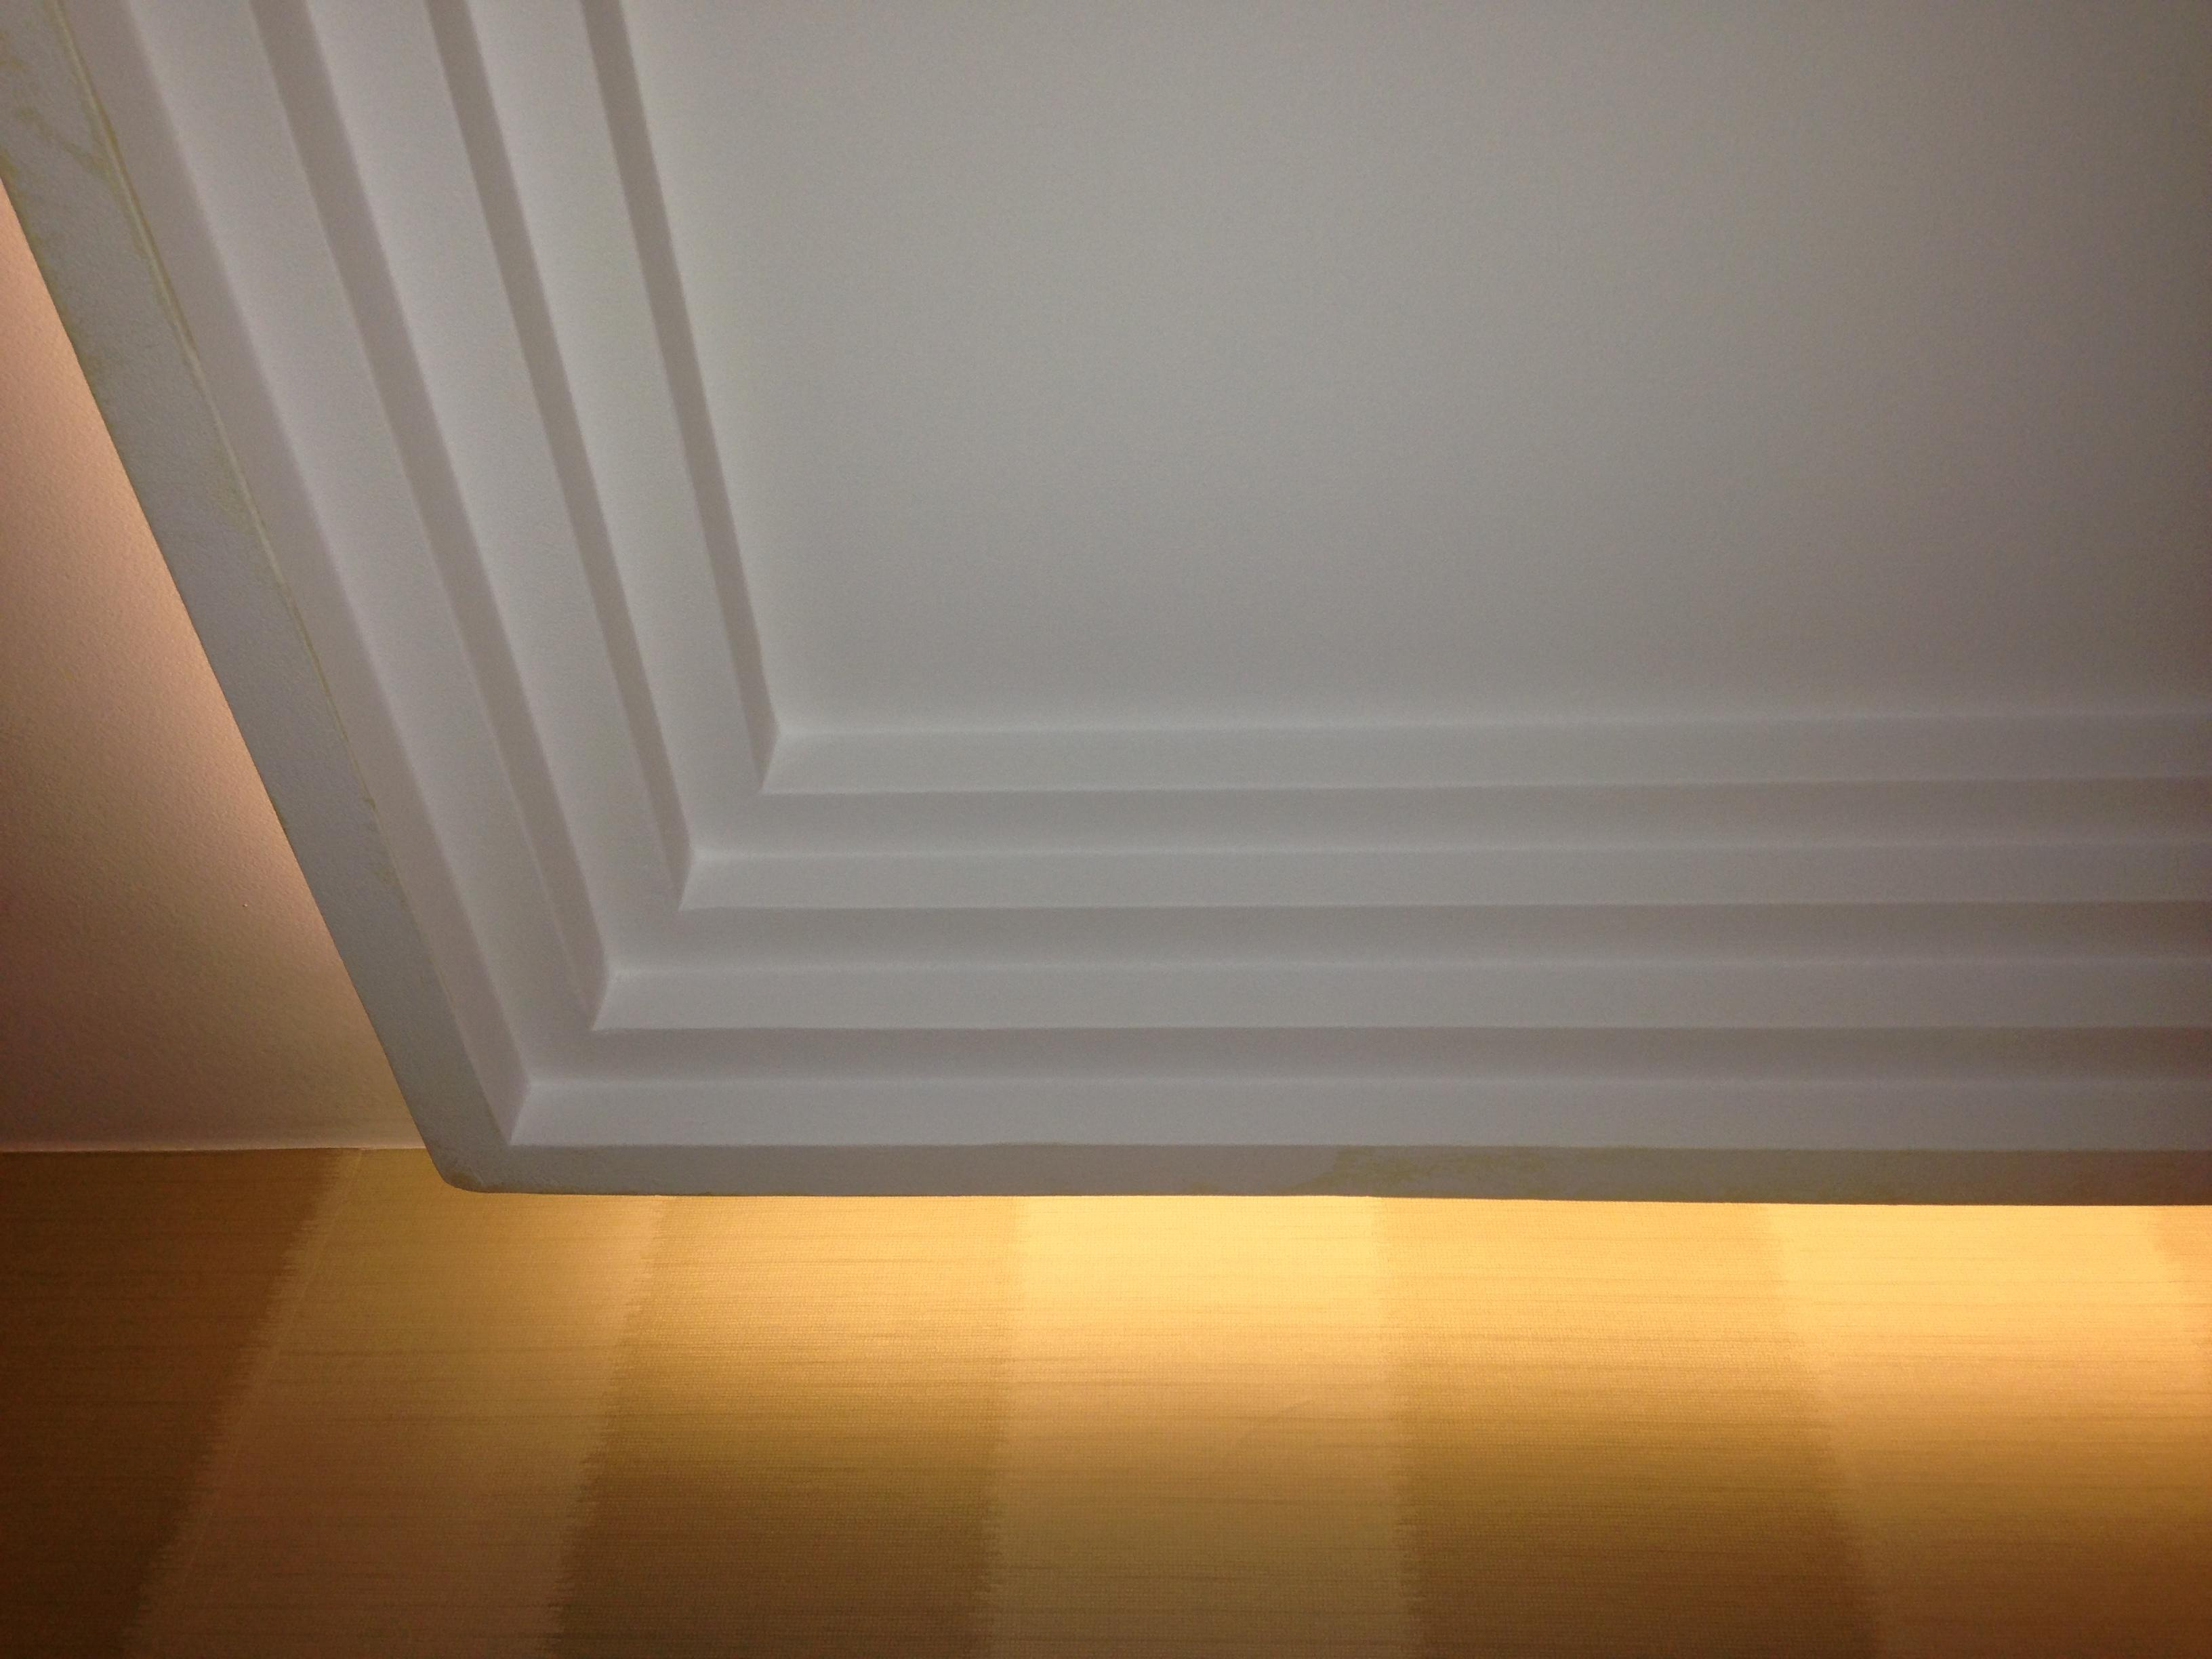 Cornice Lighting Lighting Troughs Which Brighten Up A Room